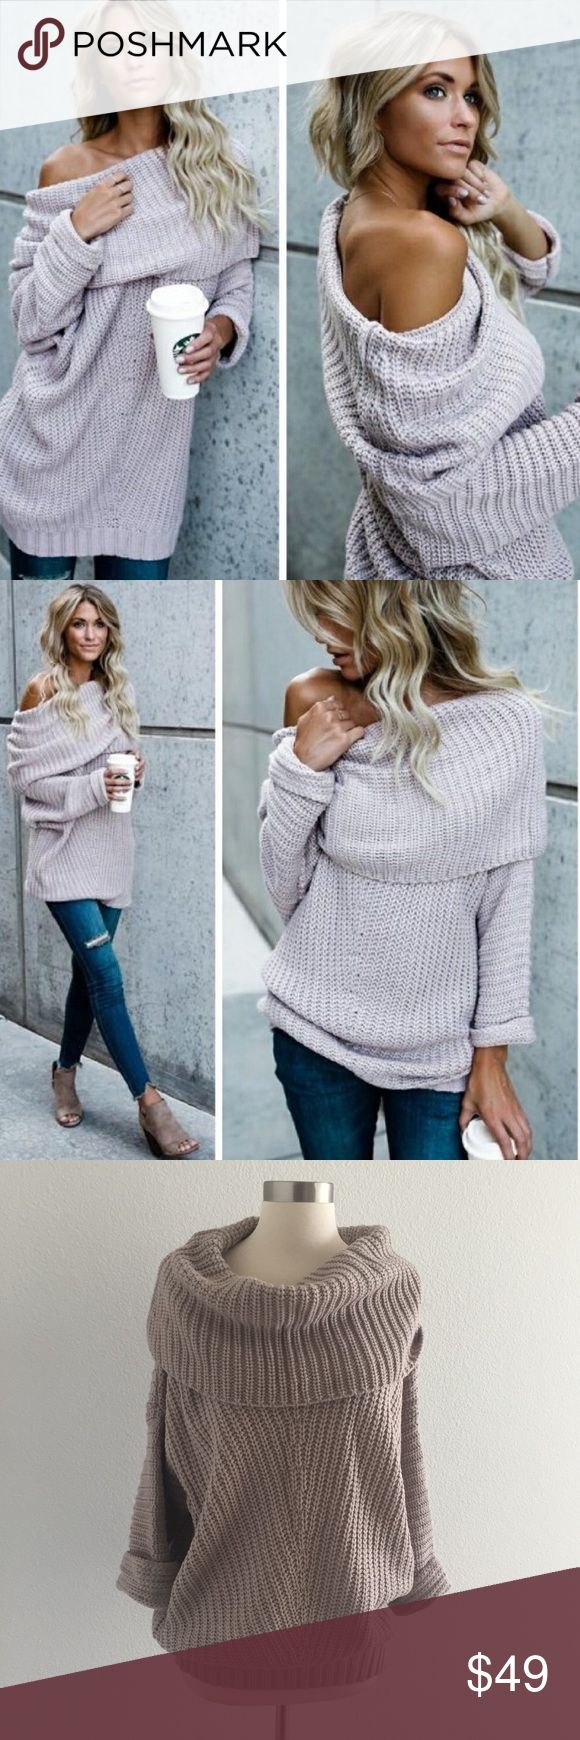 """Umgee Chunky Knit Off Shoulder Sweater Light Mauve Pair with jeans and boots and a long necklace that can be seen from under the fold. Has an oversized, slouchy fit. Can be worn off the shoulder or as a cowl neck. Folded sleeves. Banded bottom. Color: light mauve. Material: 65% cotton, 35% polyester. Measurements laying flat: Approx 24"""" across bust, 28"""" length. New with tag! Umgee Sweaters Cowl & Turtlenecks"""